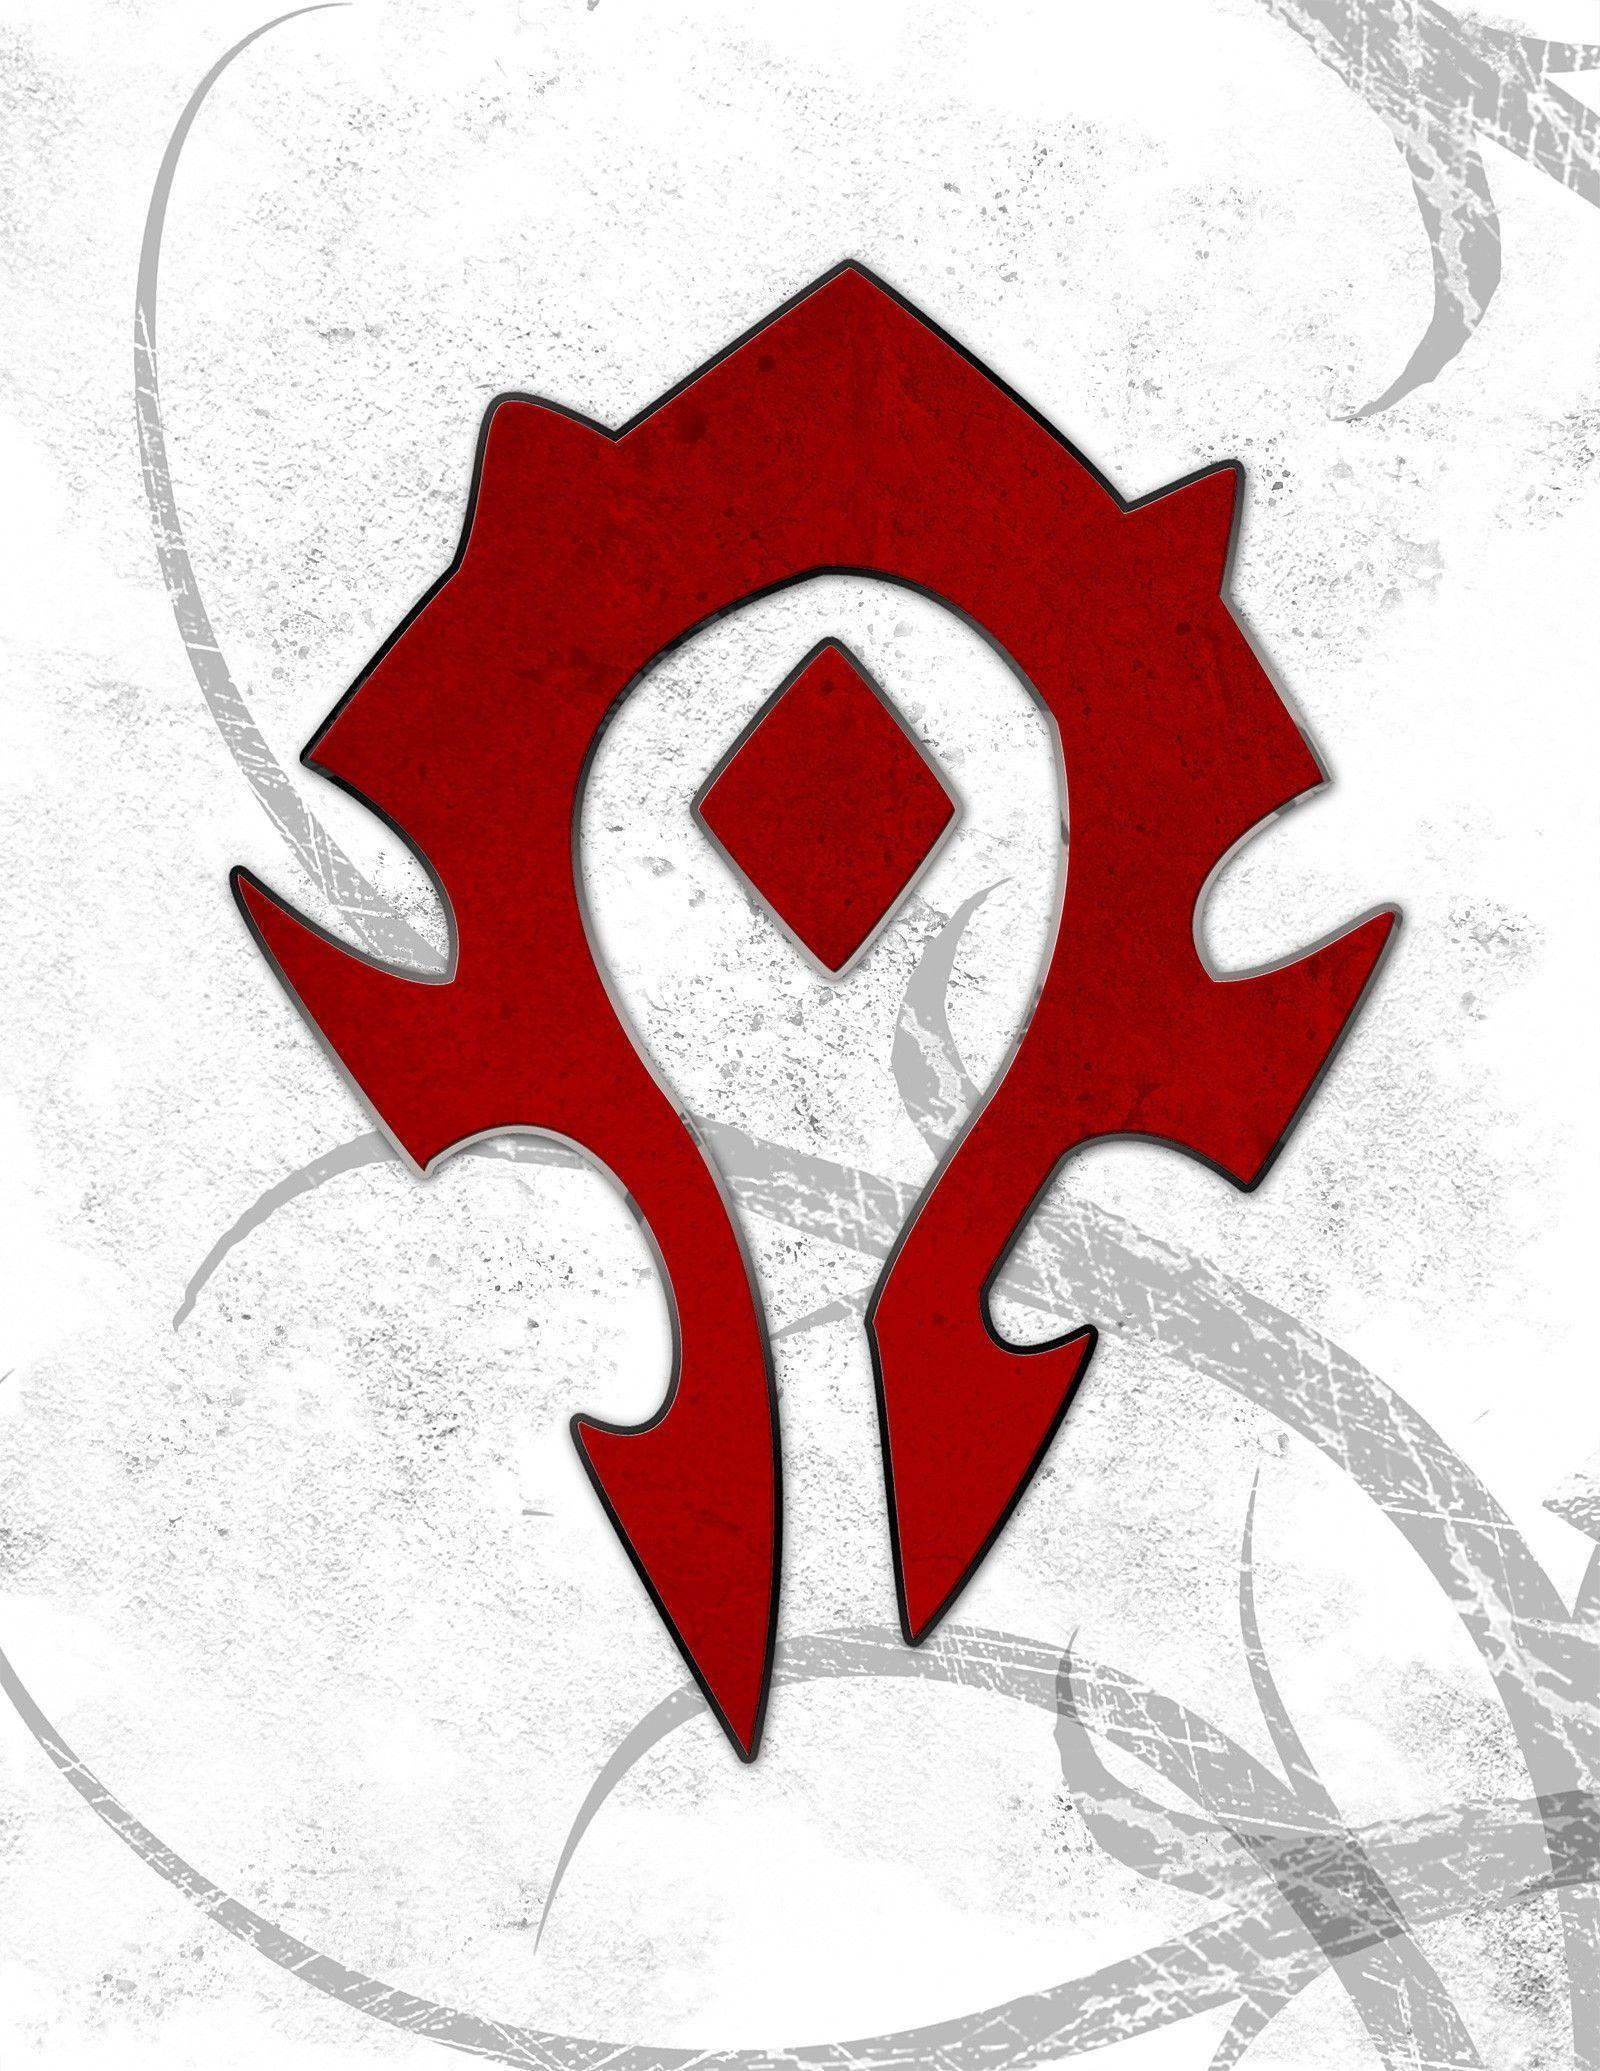 Image For > World Of Warcraft Horde Logo